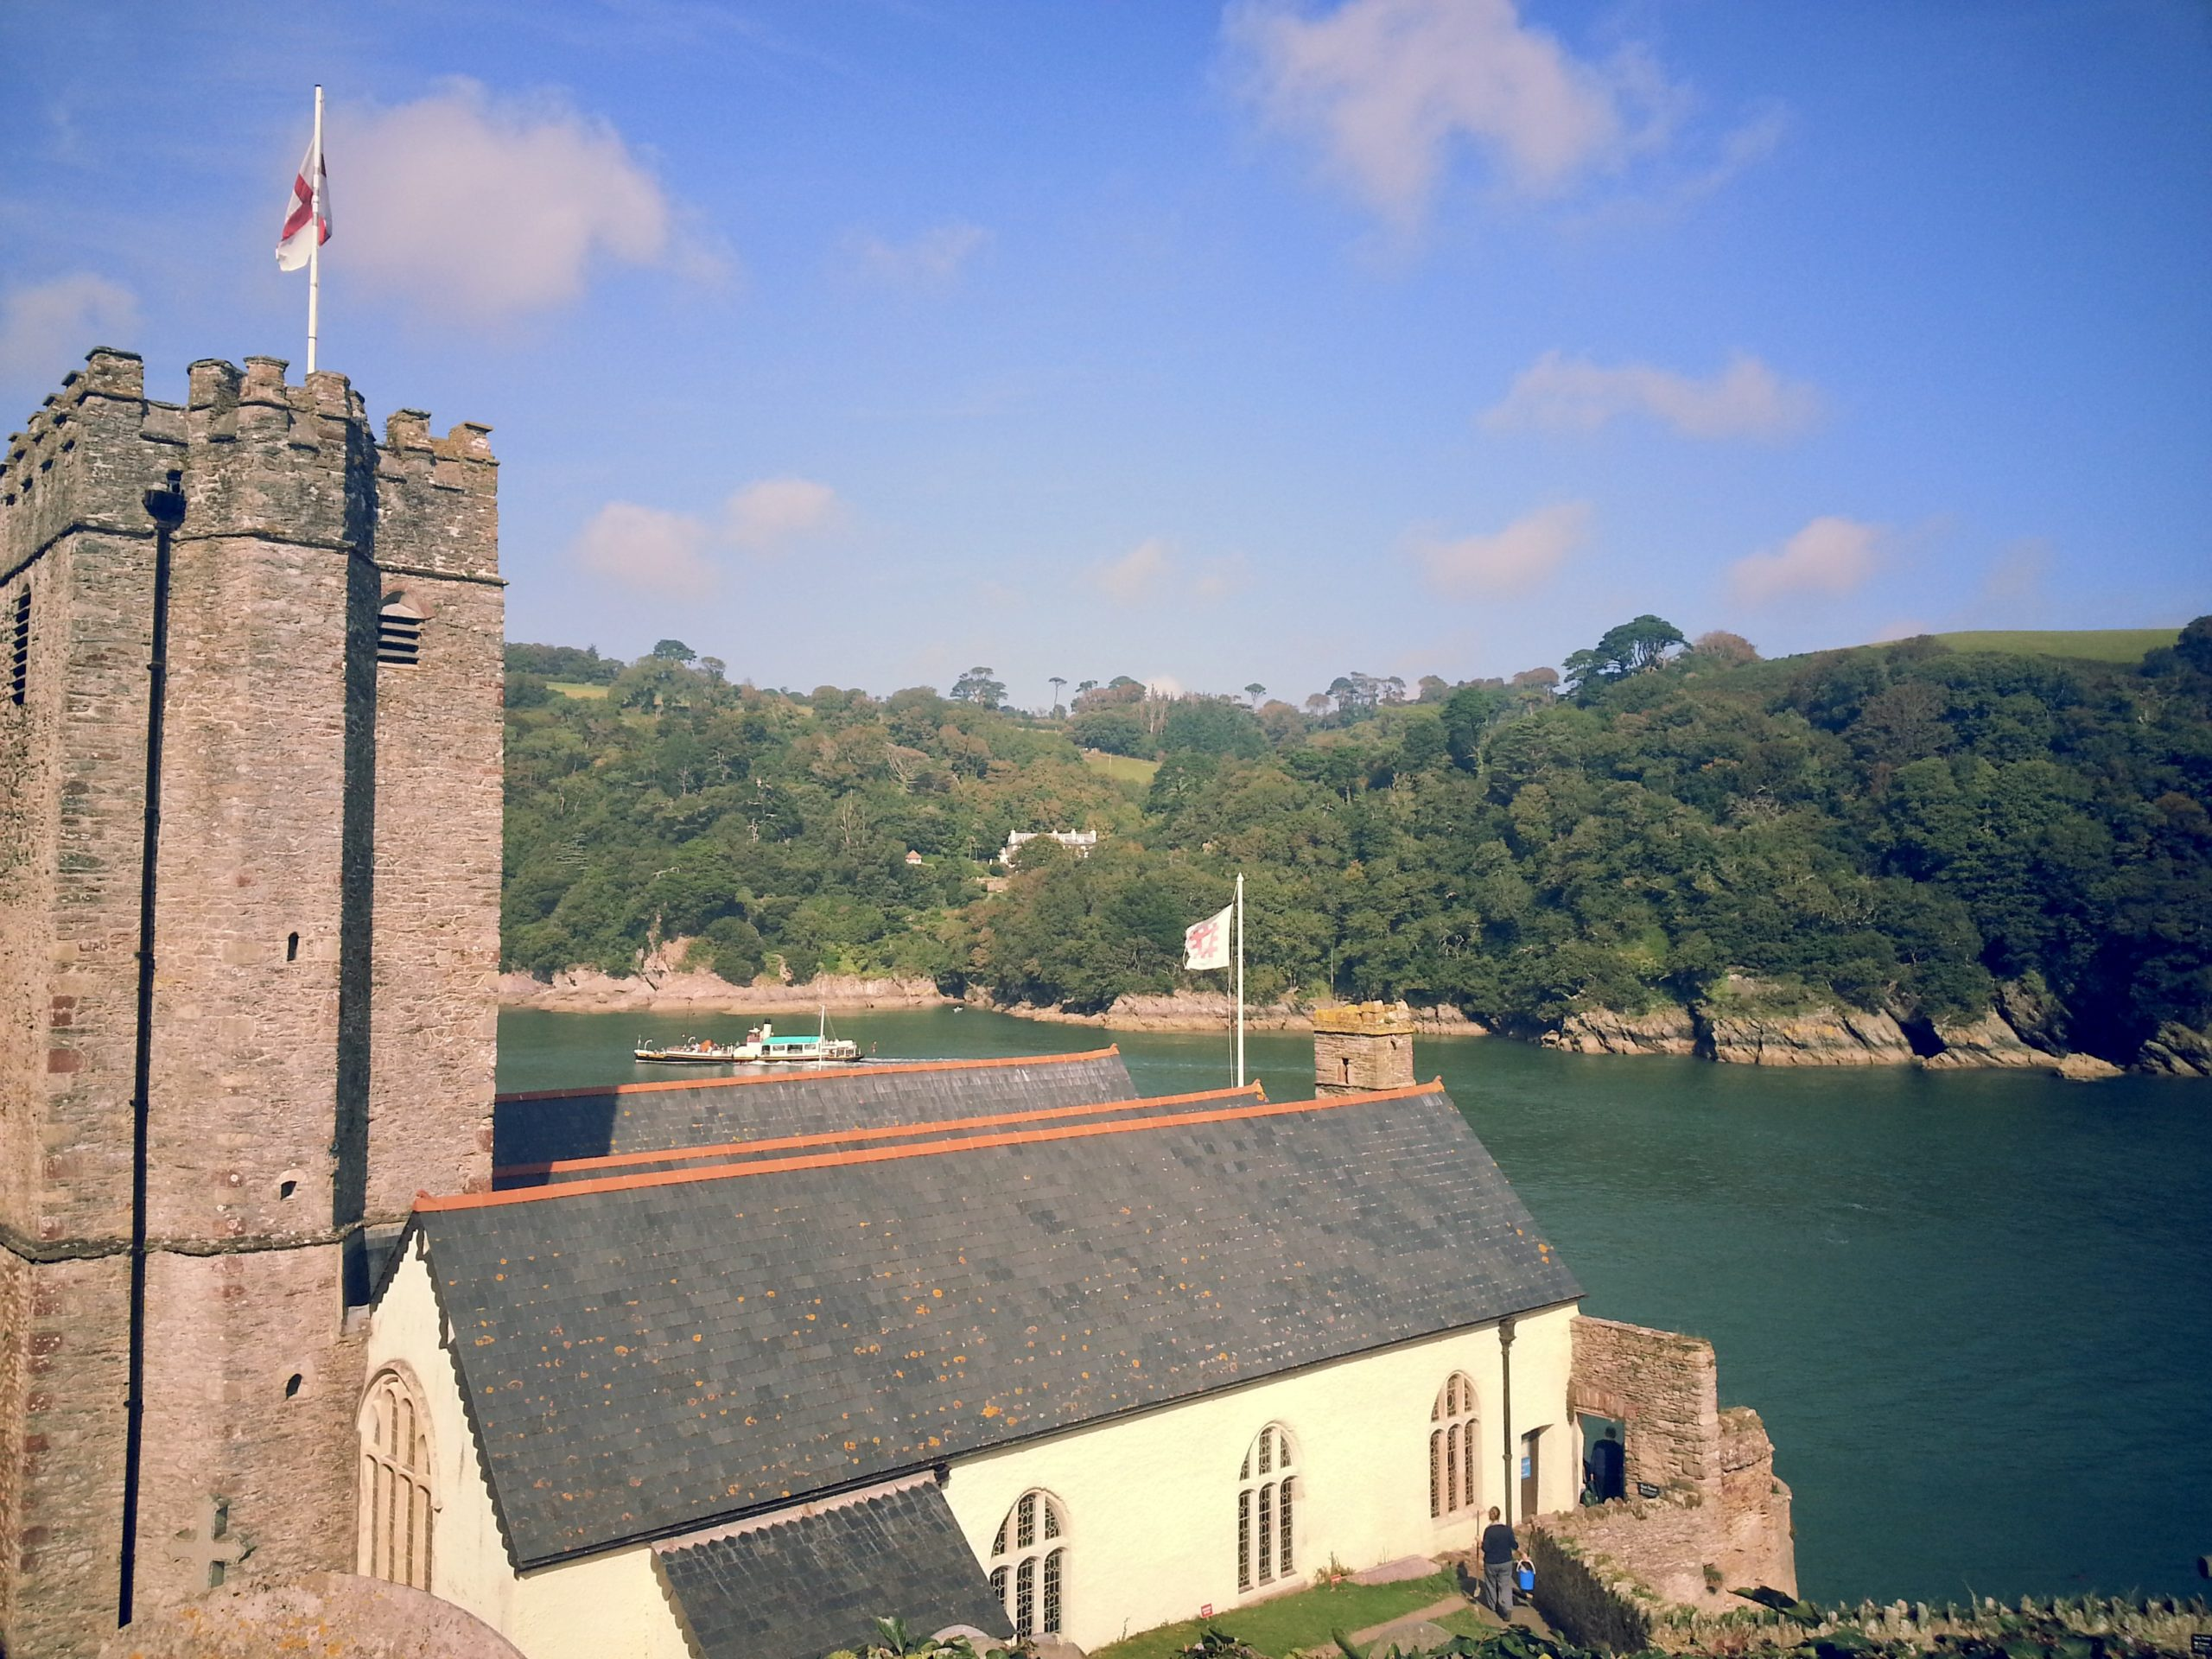 Day trip: Charming Dartmouth with the ancient Steam Railway